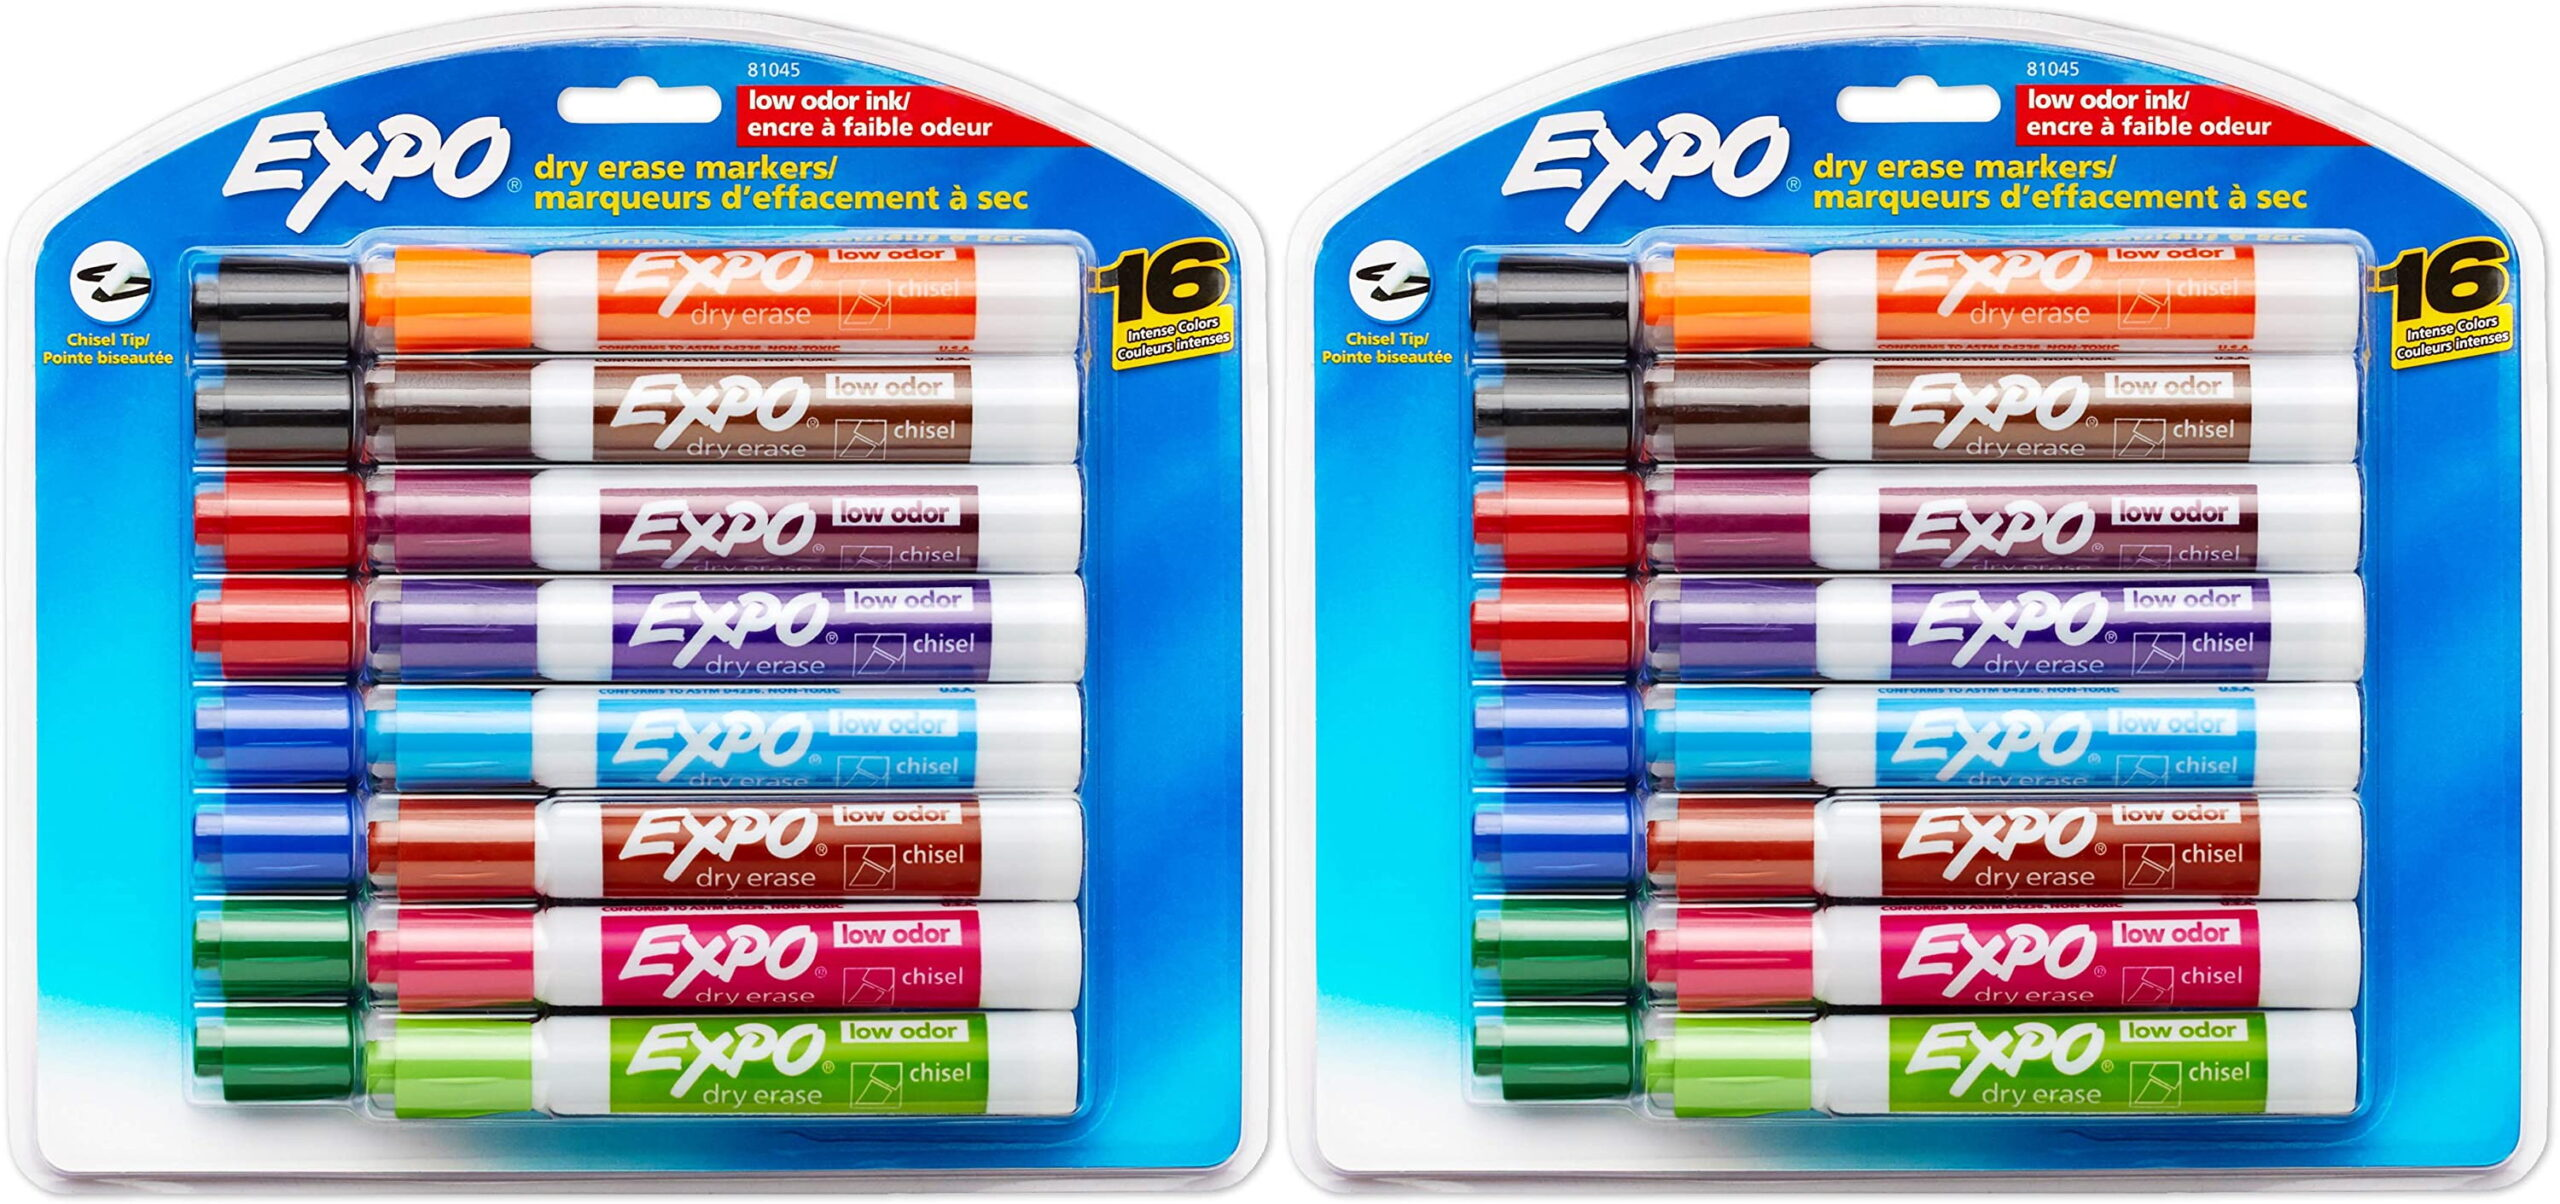 EXPO MARKER DEAL SALE COUPON CODE